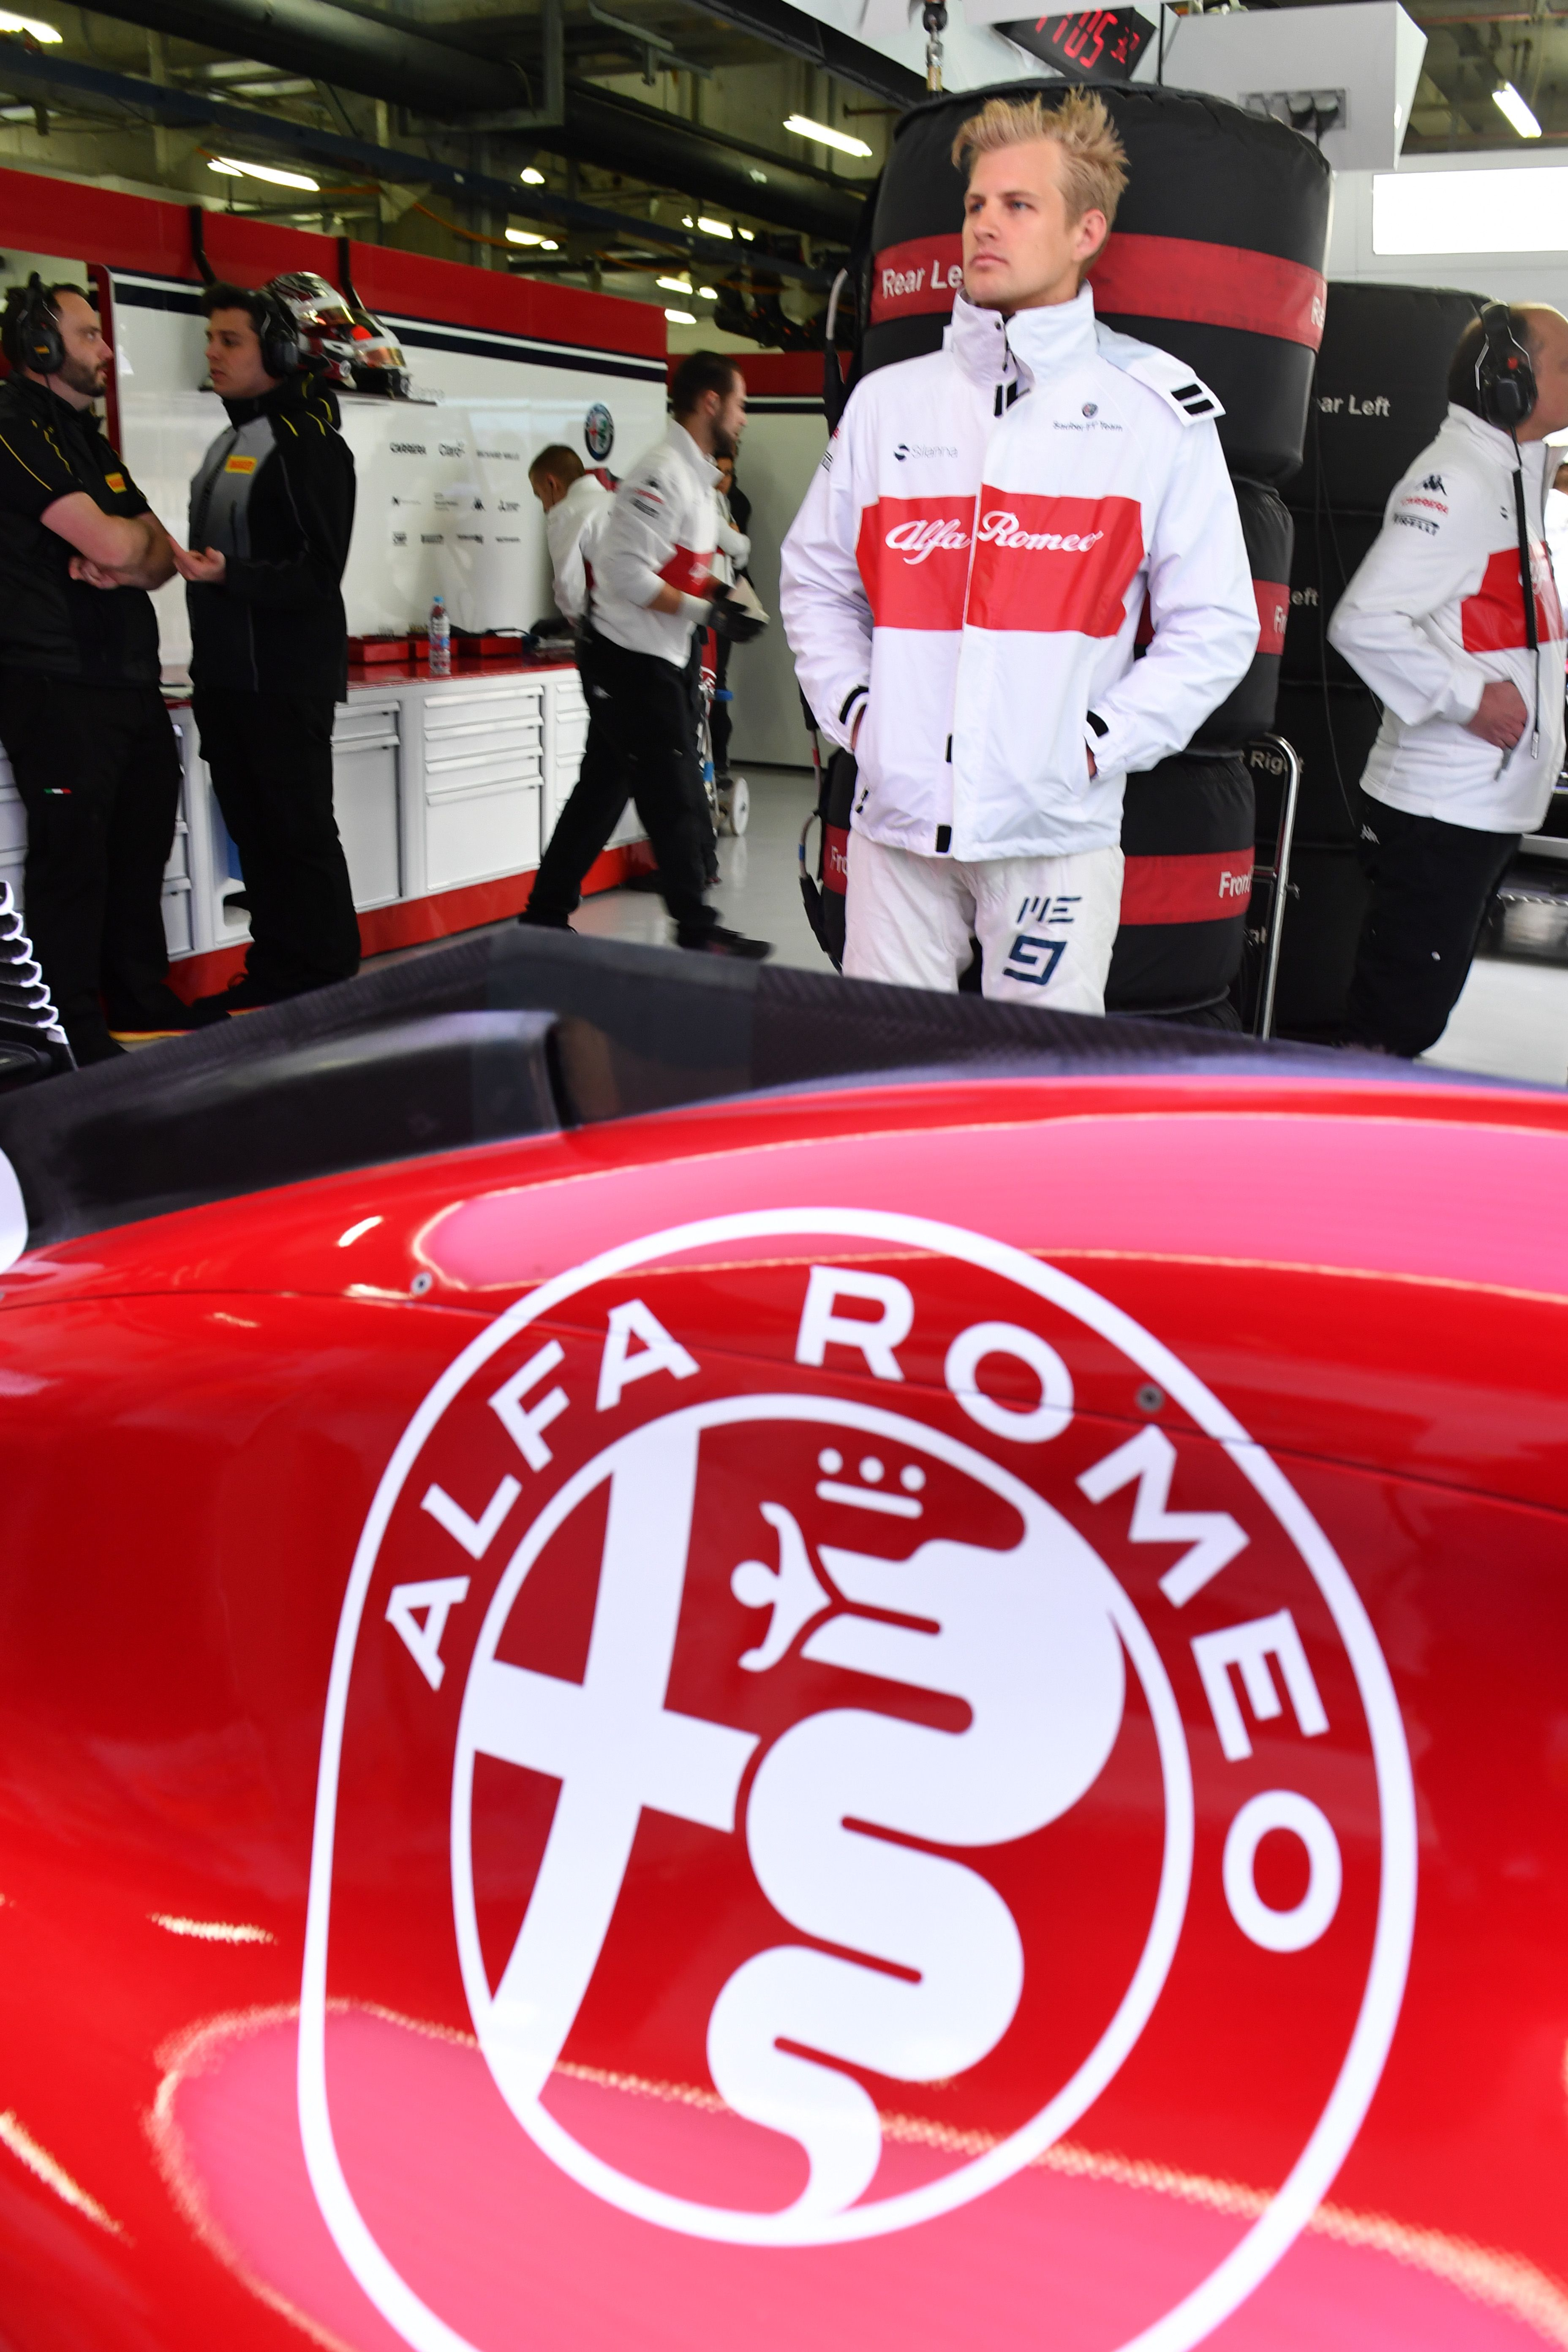 Marcus Ericsson And The C37 In The Alfa Romeo Sauber F1 Team Garage At The 2018 Chinese Gp